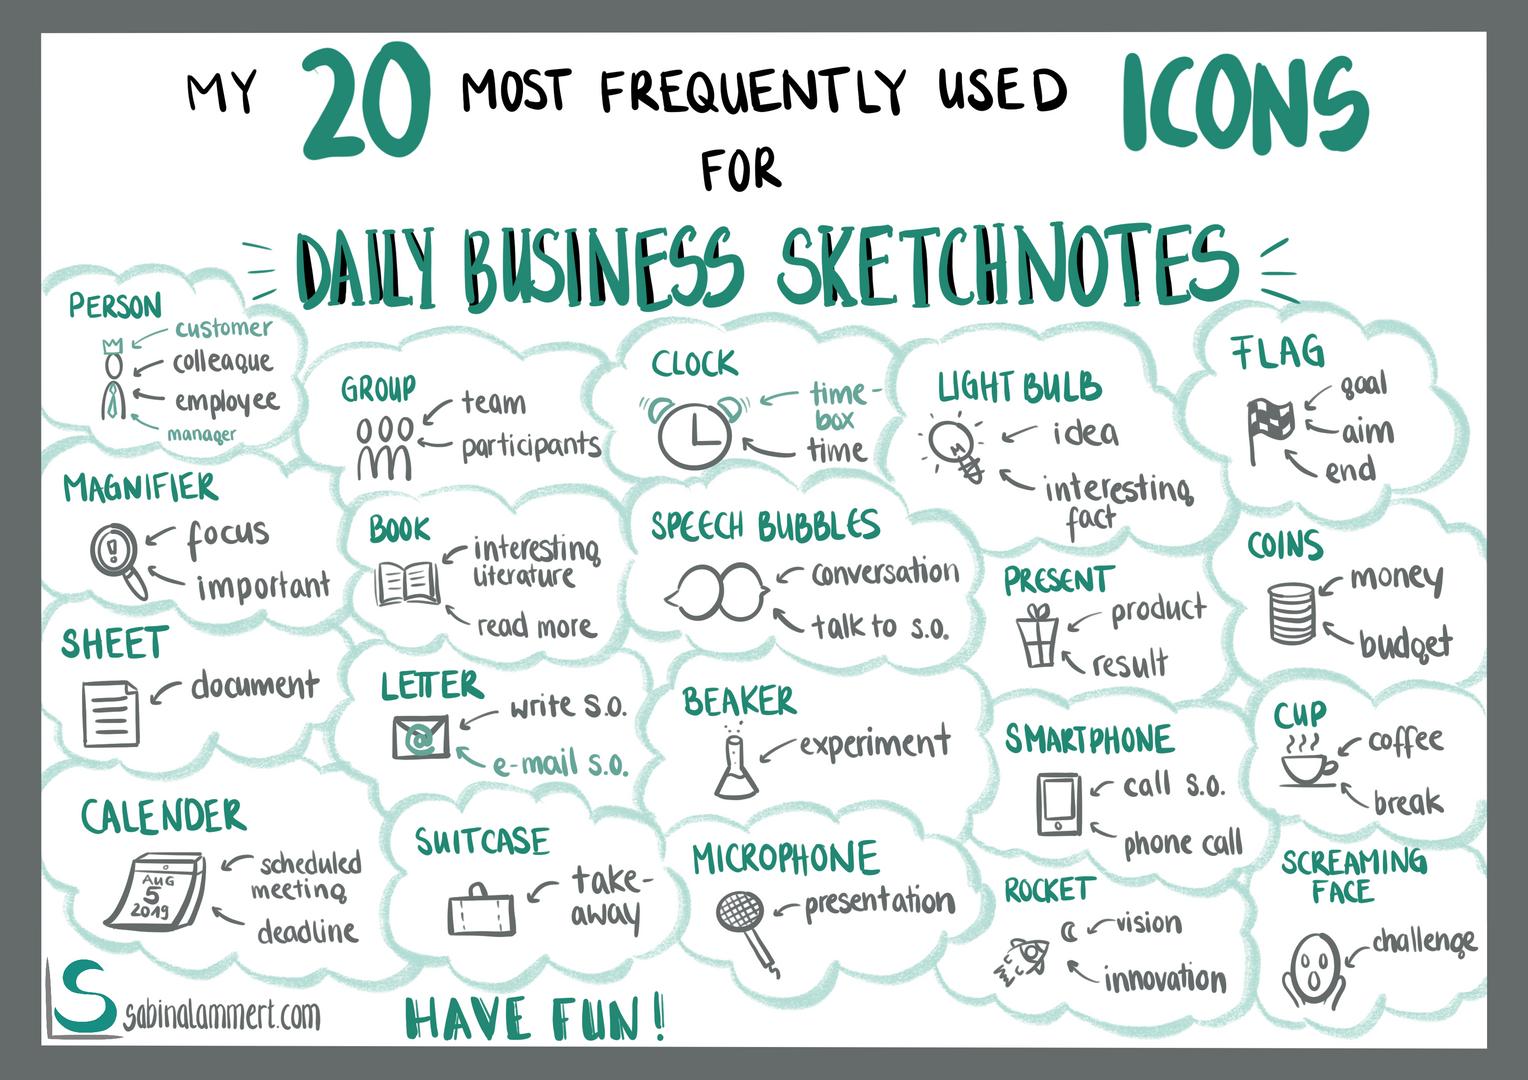 Sketchnote Business Icons.png